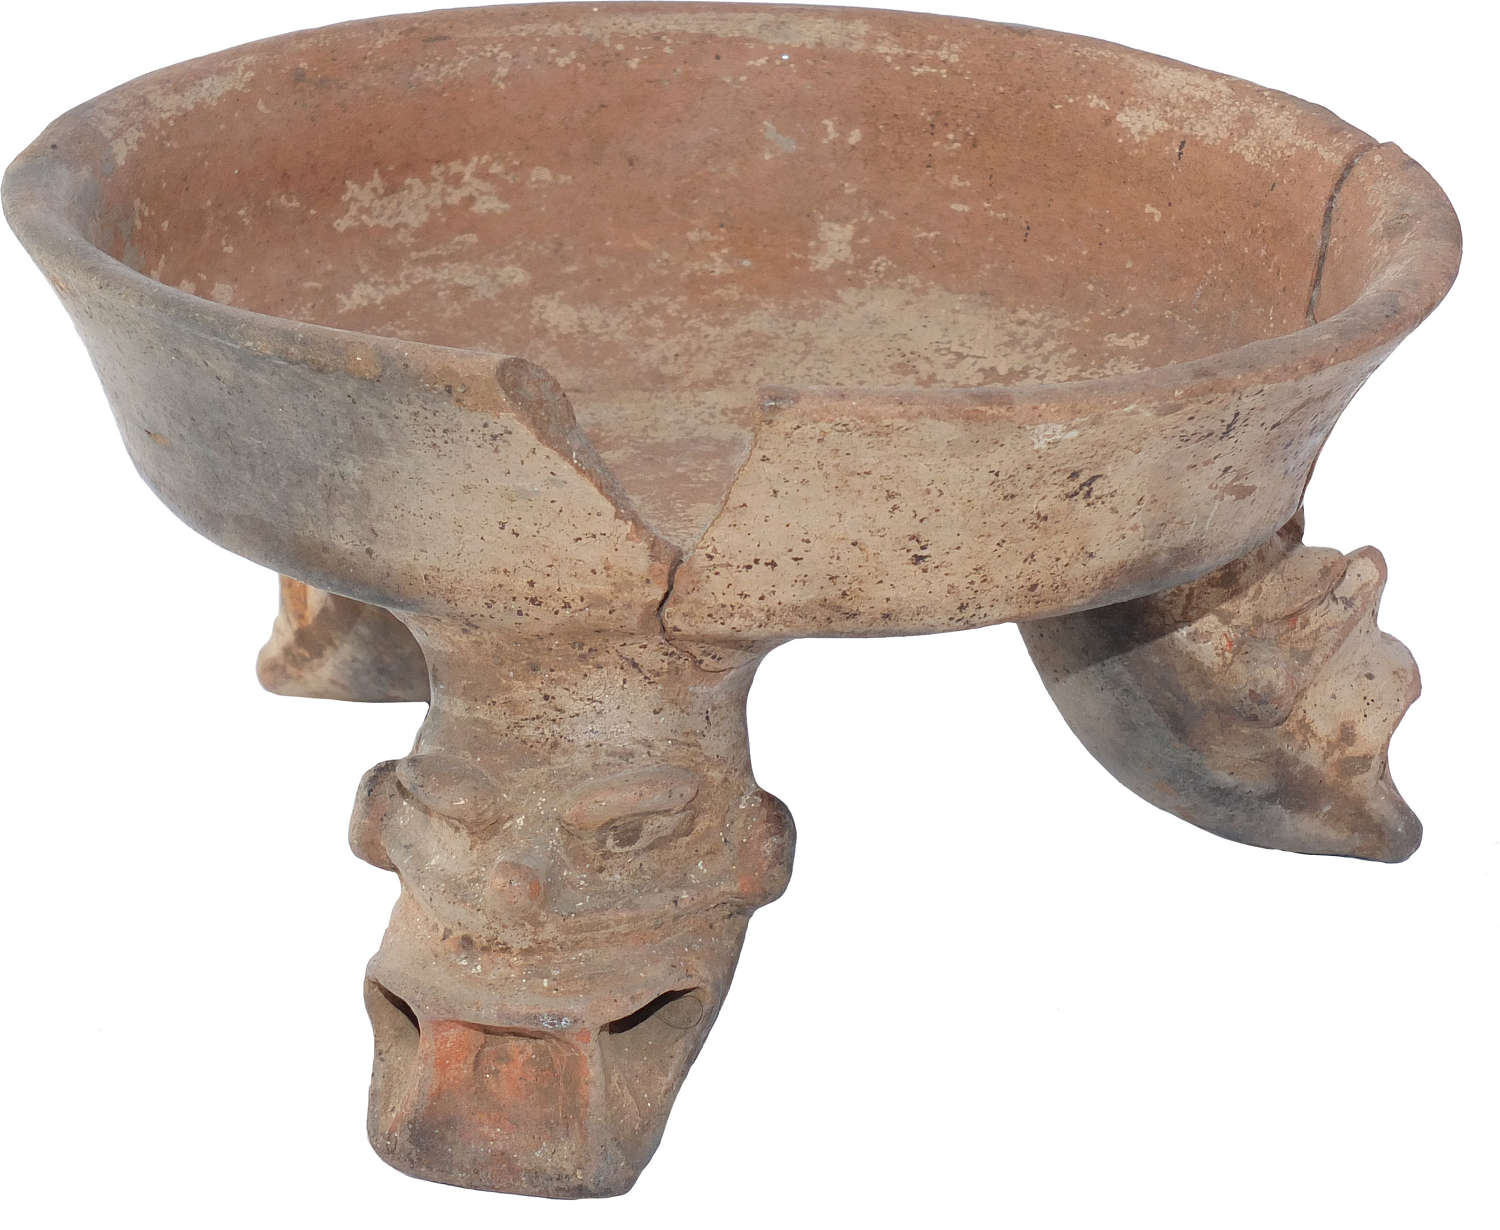 A Costa Rican tripod bowl with rattle legs modelled as demonic heads